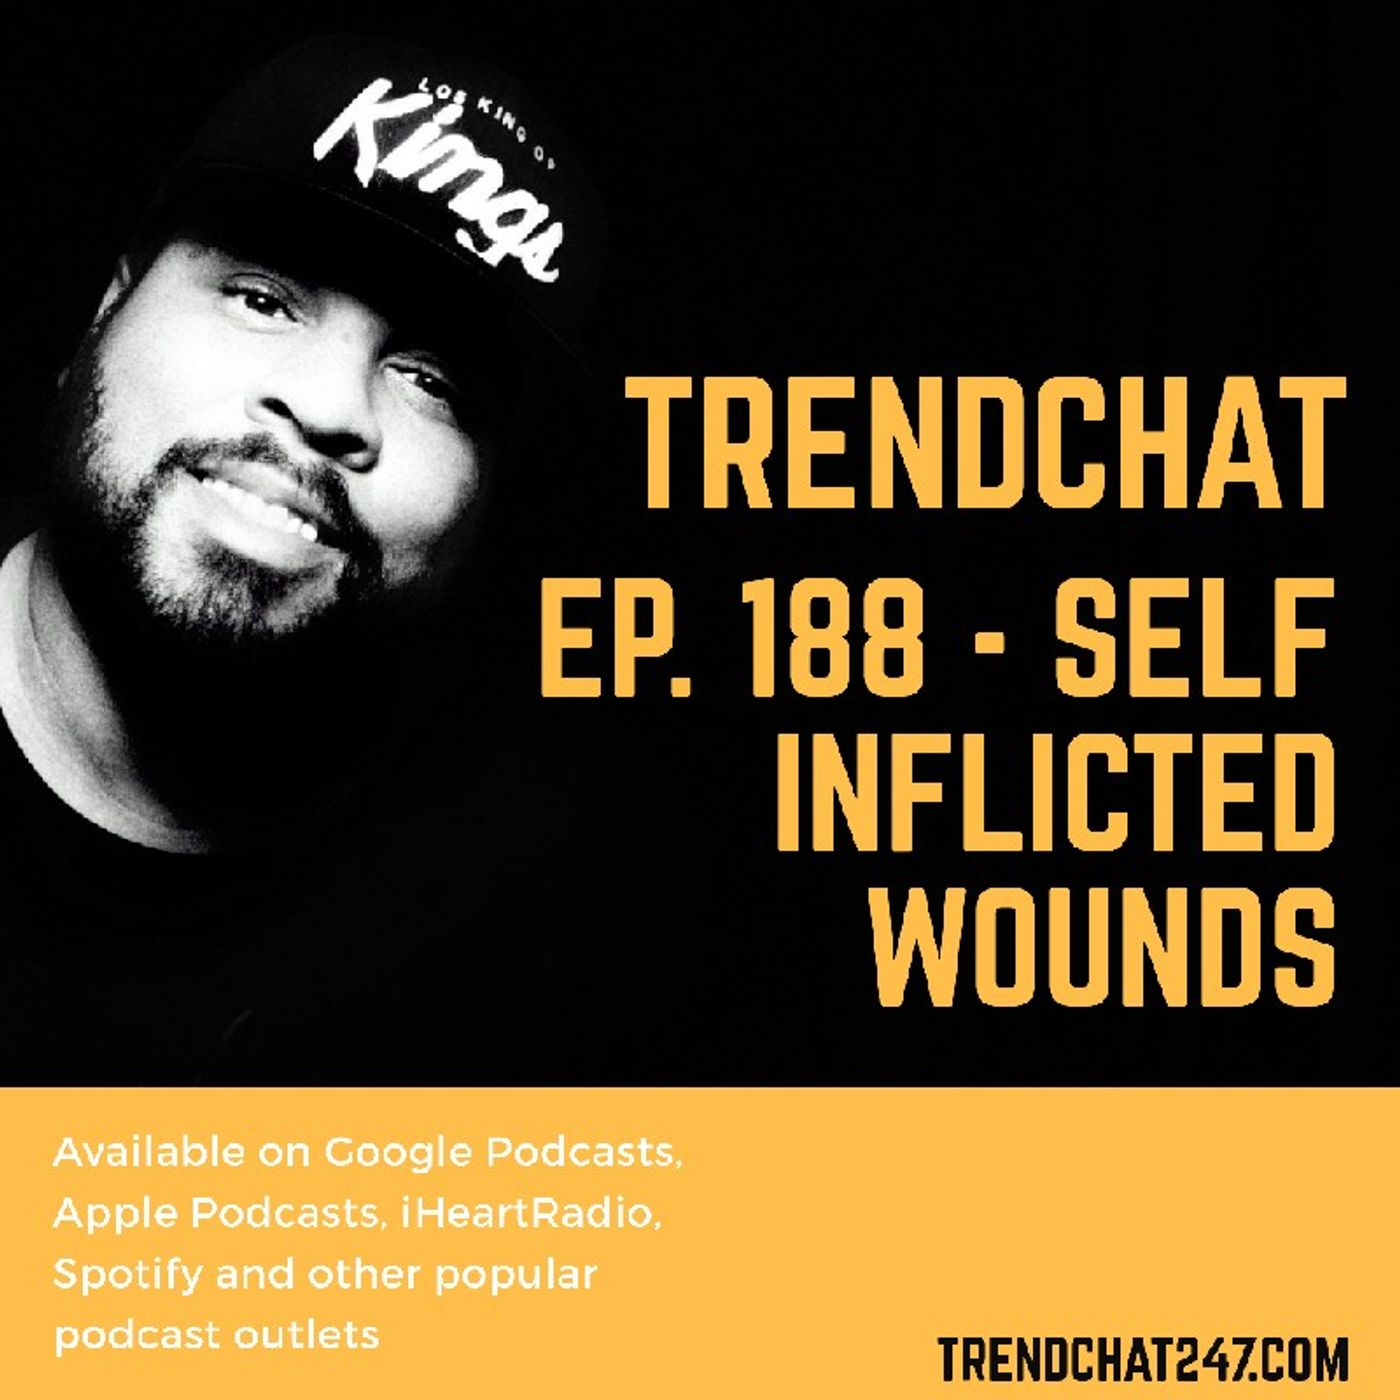 Ep. 188 - Self Inflicted Wounds